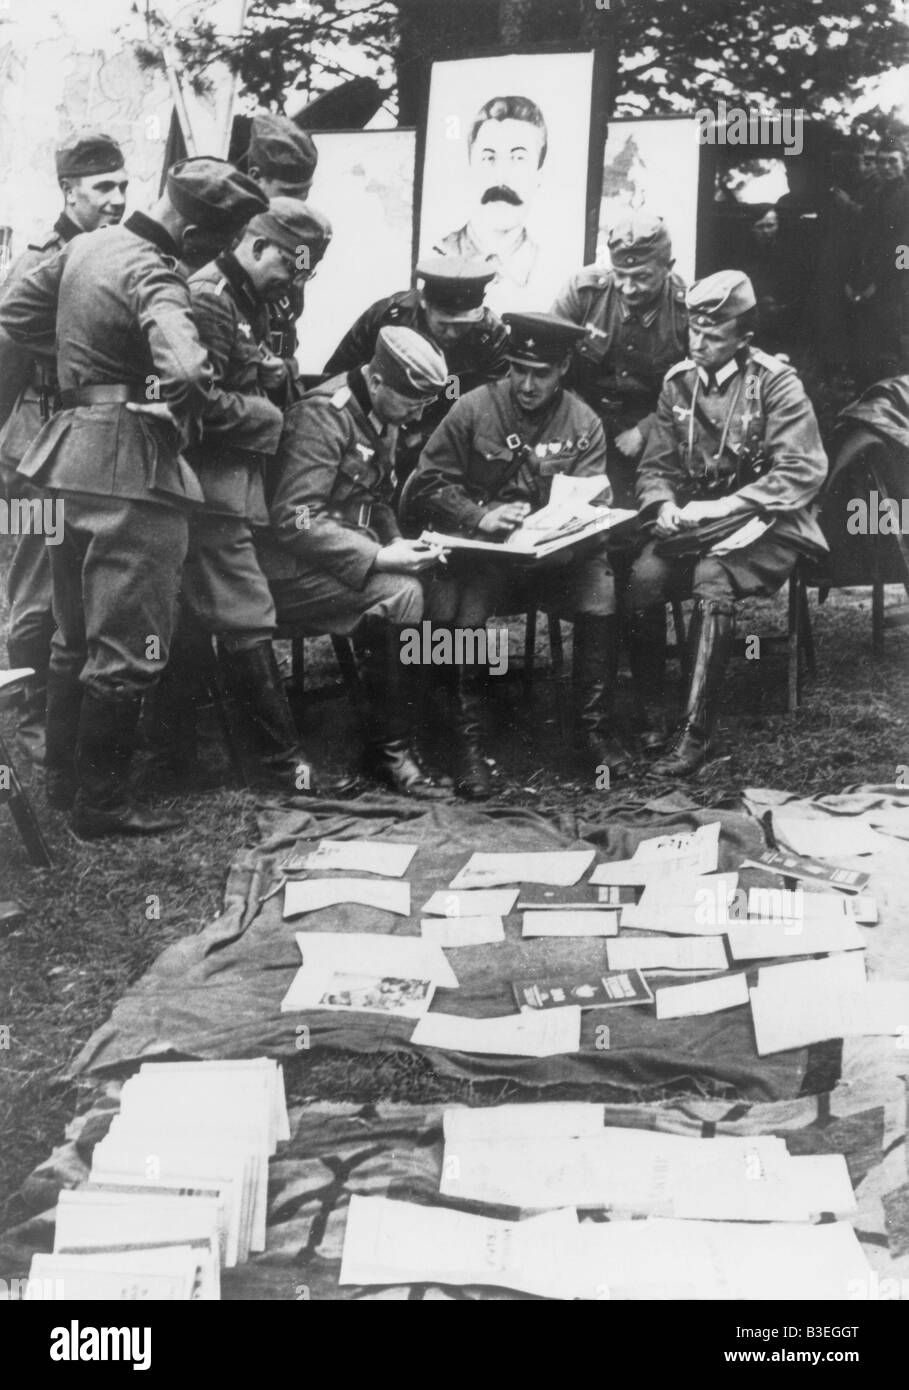 German and Soviet soldiers in Poland. - Stock Image